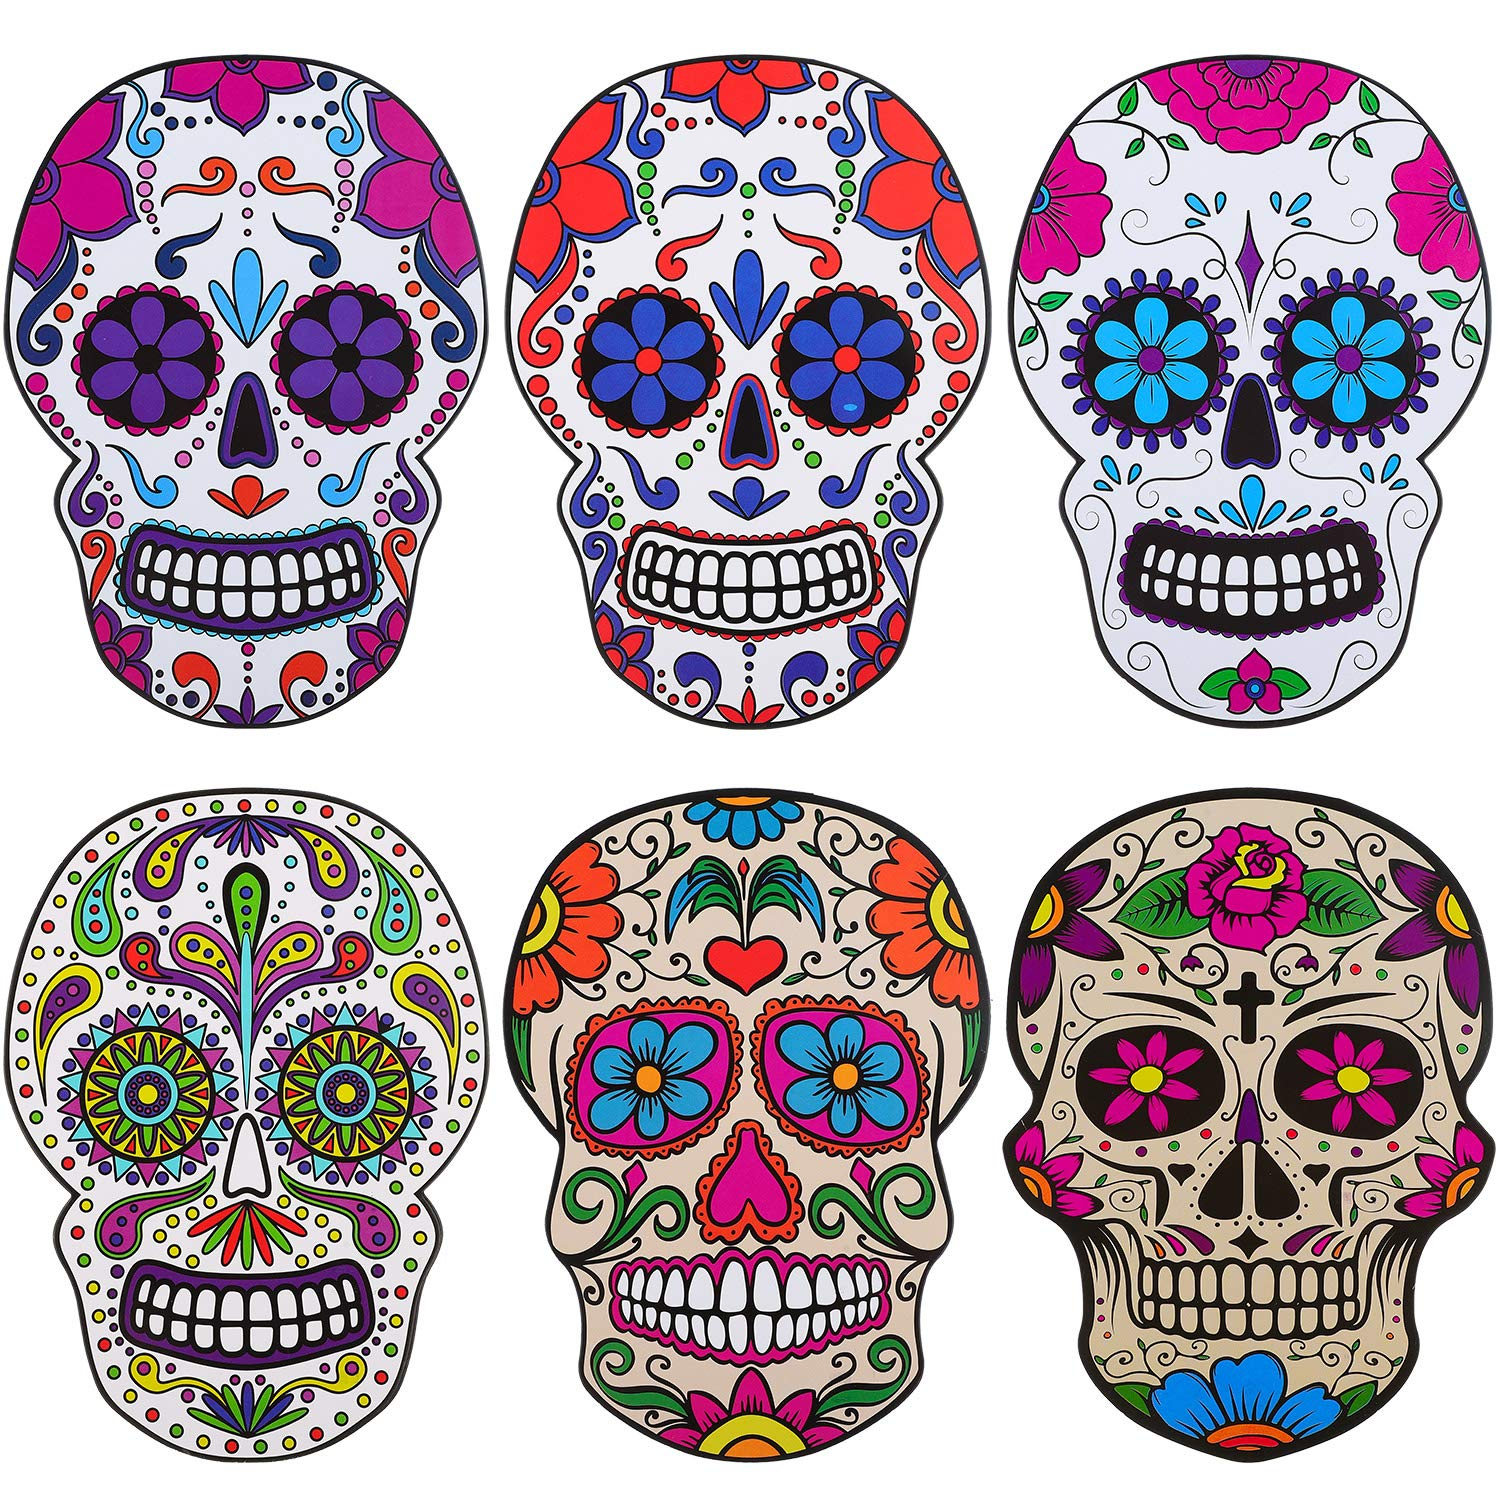 Halloween Skull Decorations.Zonon 30 Pieces Sugar Skull Decor Halloween Day Of The Dead Sugar Skulls Colorful Skull Decorations For Craft Collection Party Accessories Buy Online In India At Desertcart In Productid 219876265